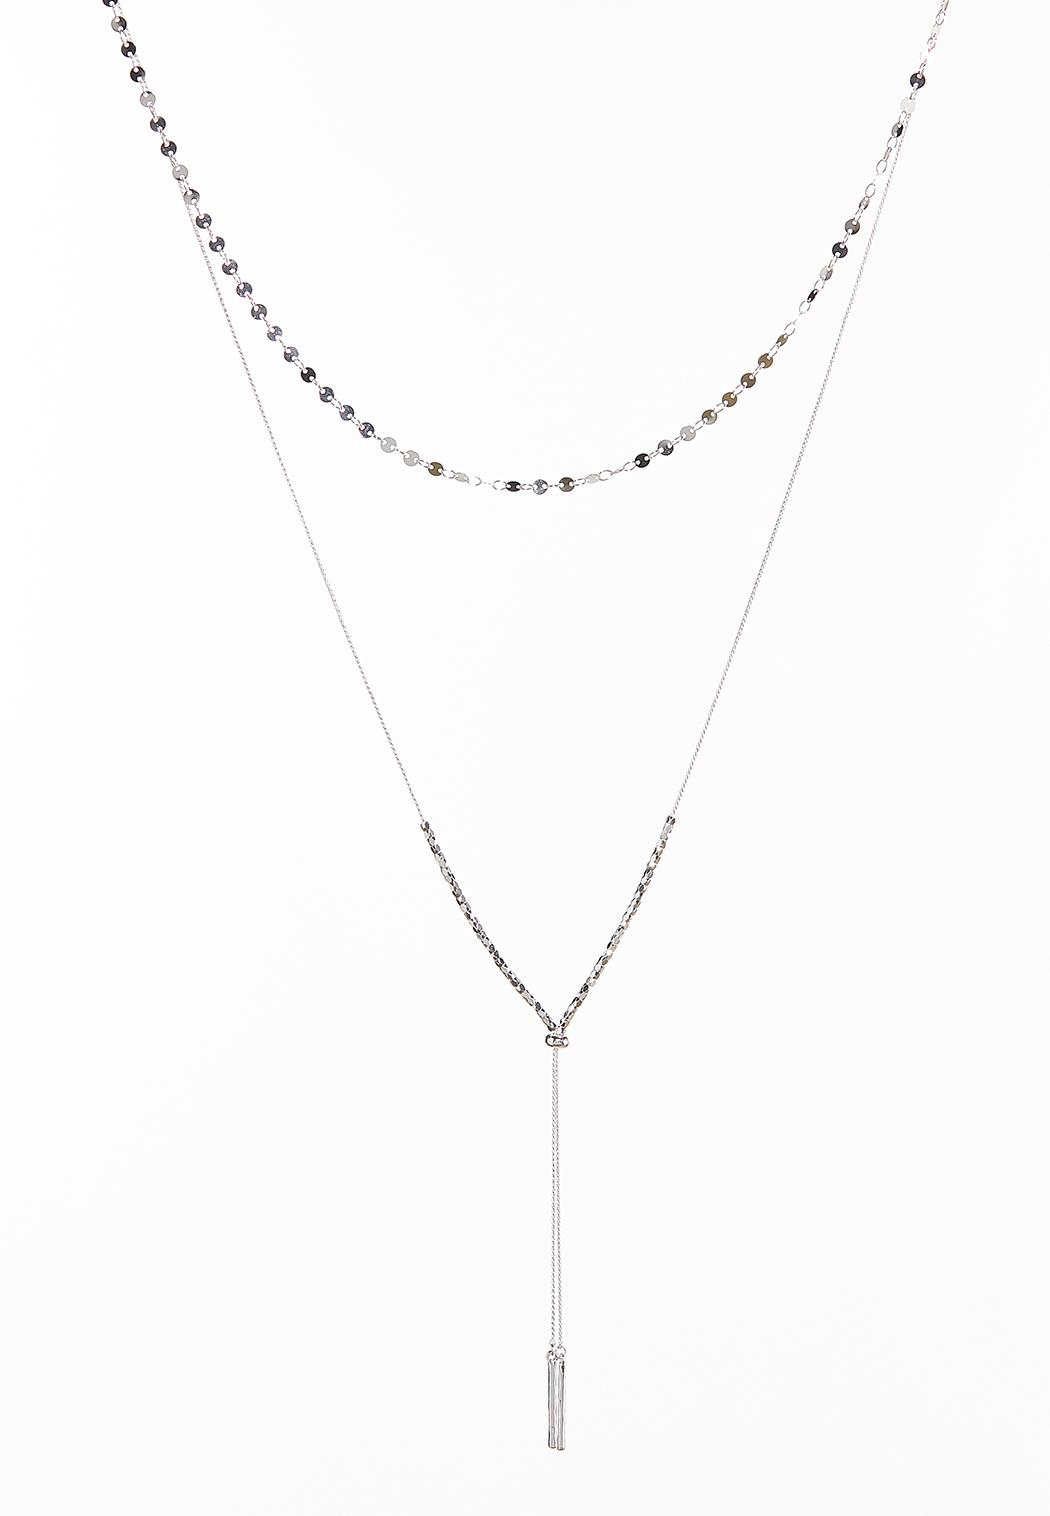 Dainty Layered Bar Necklace